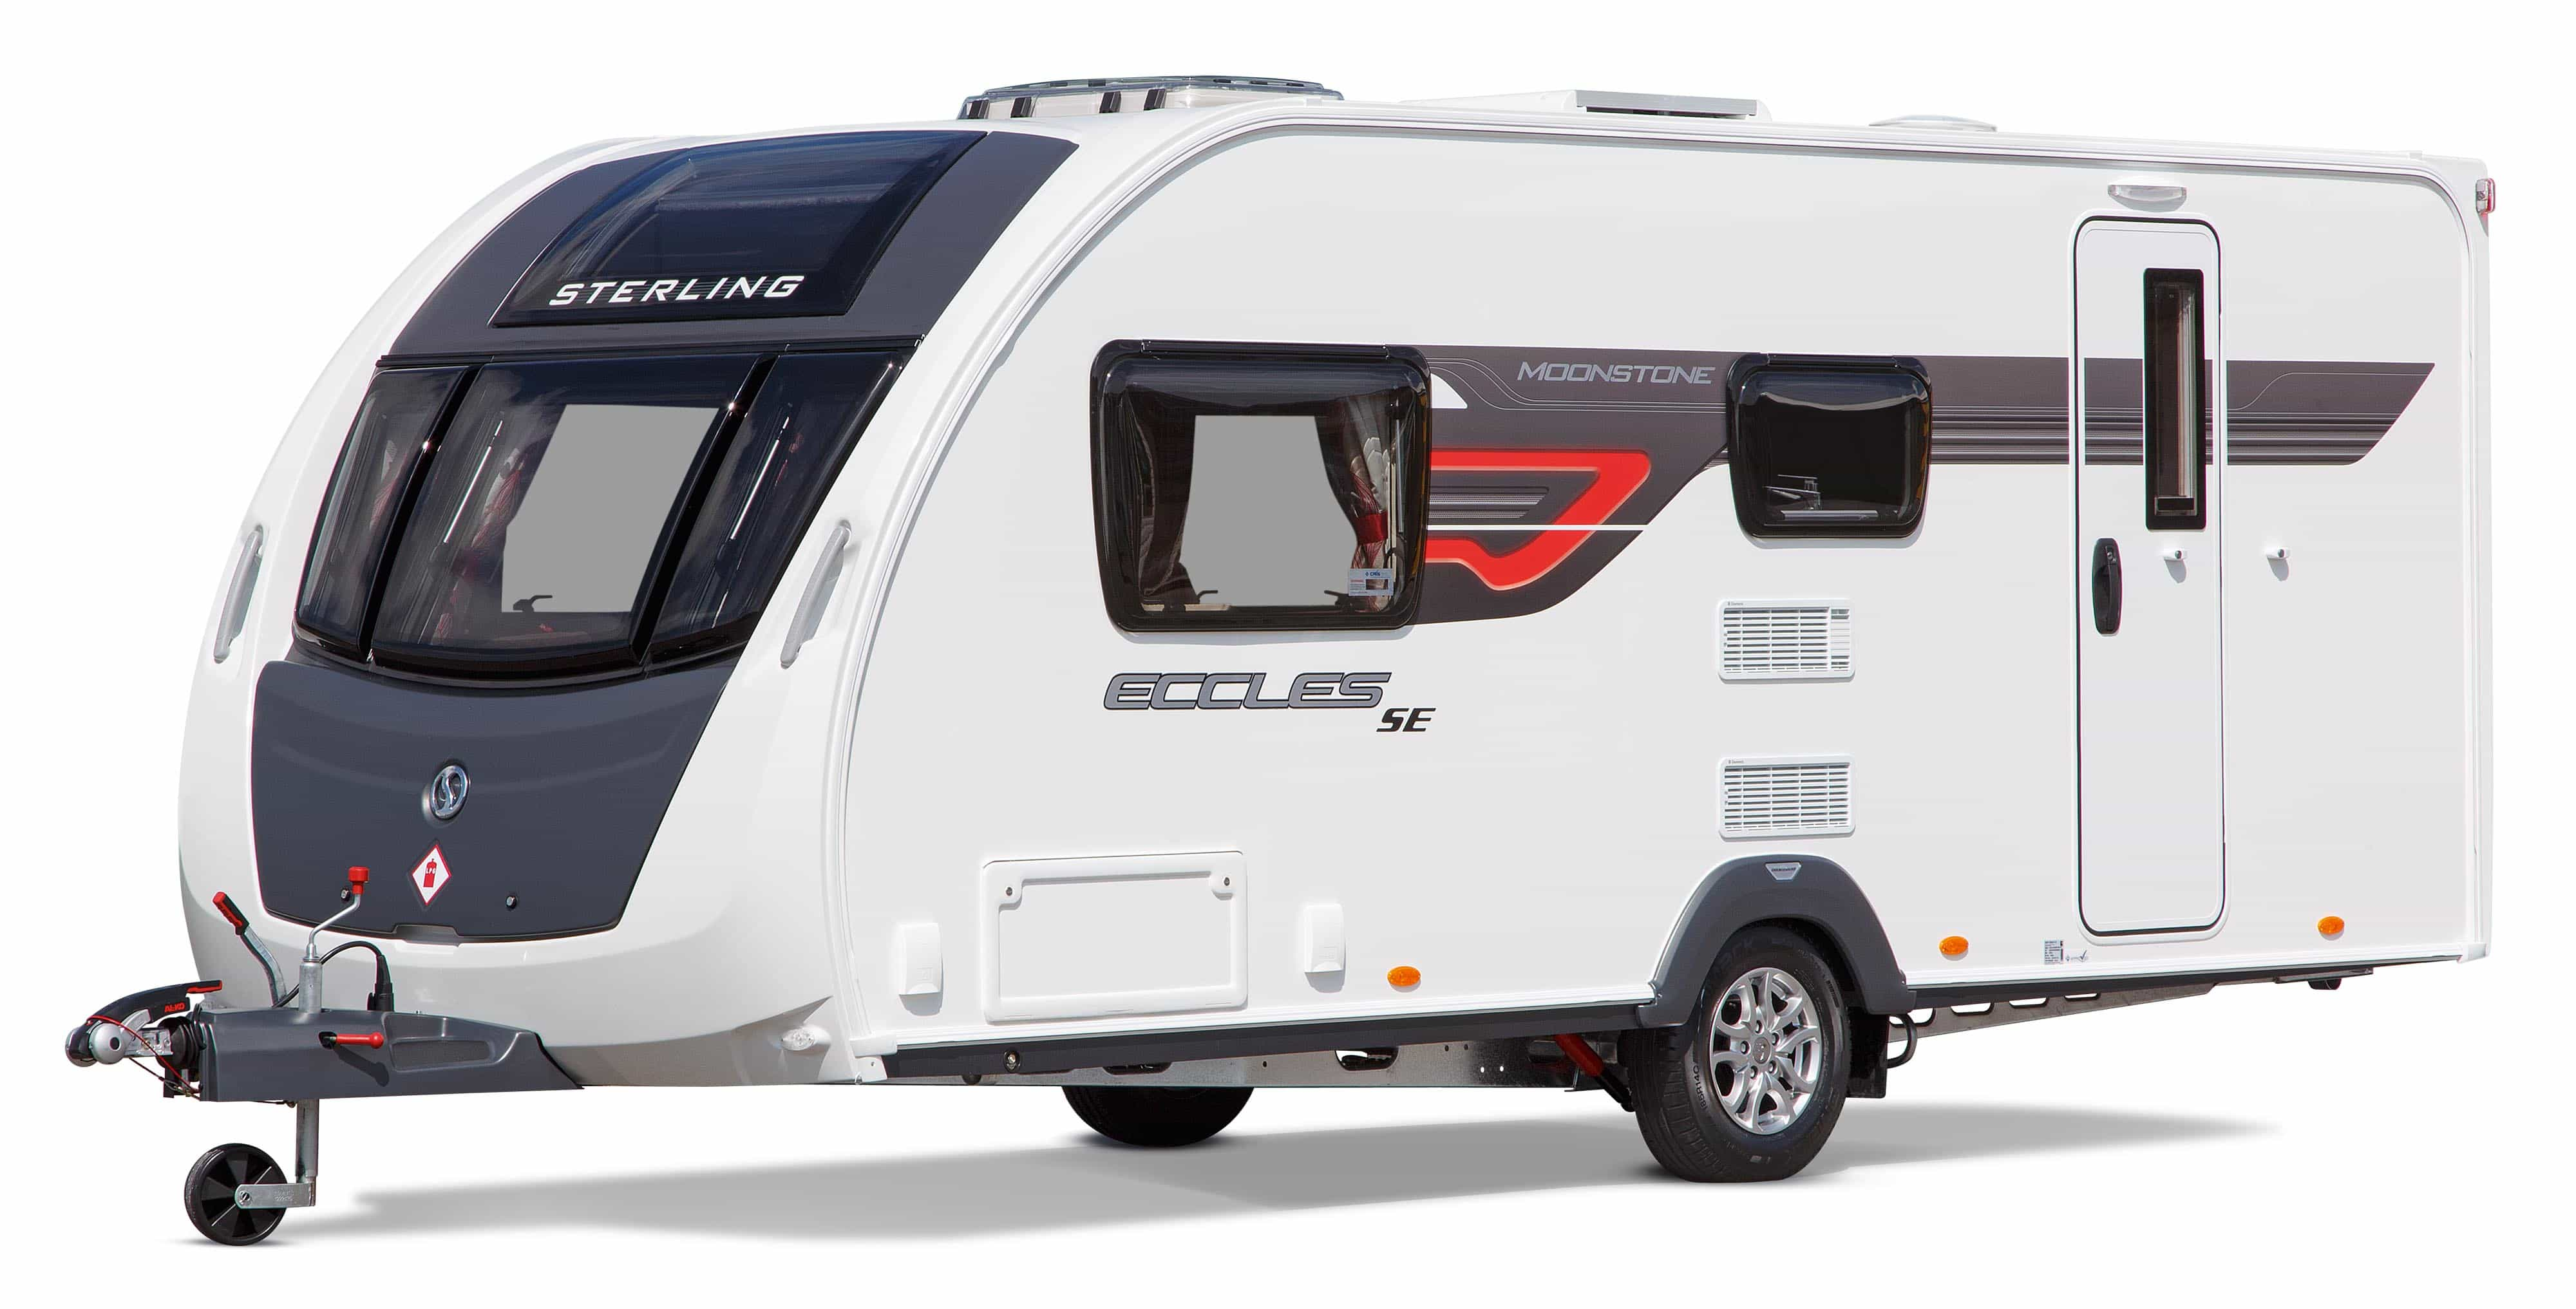 20, 20, 20 and 20 Berth Used Touring Caravans For Sale